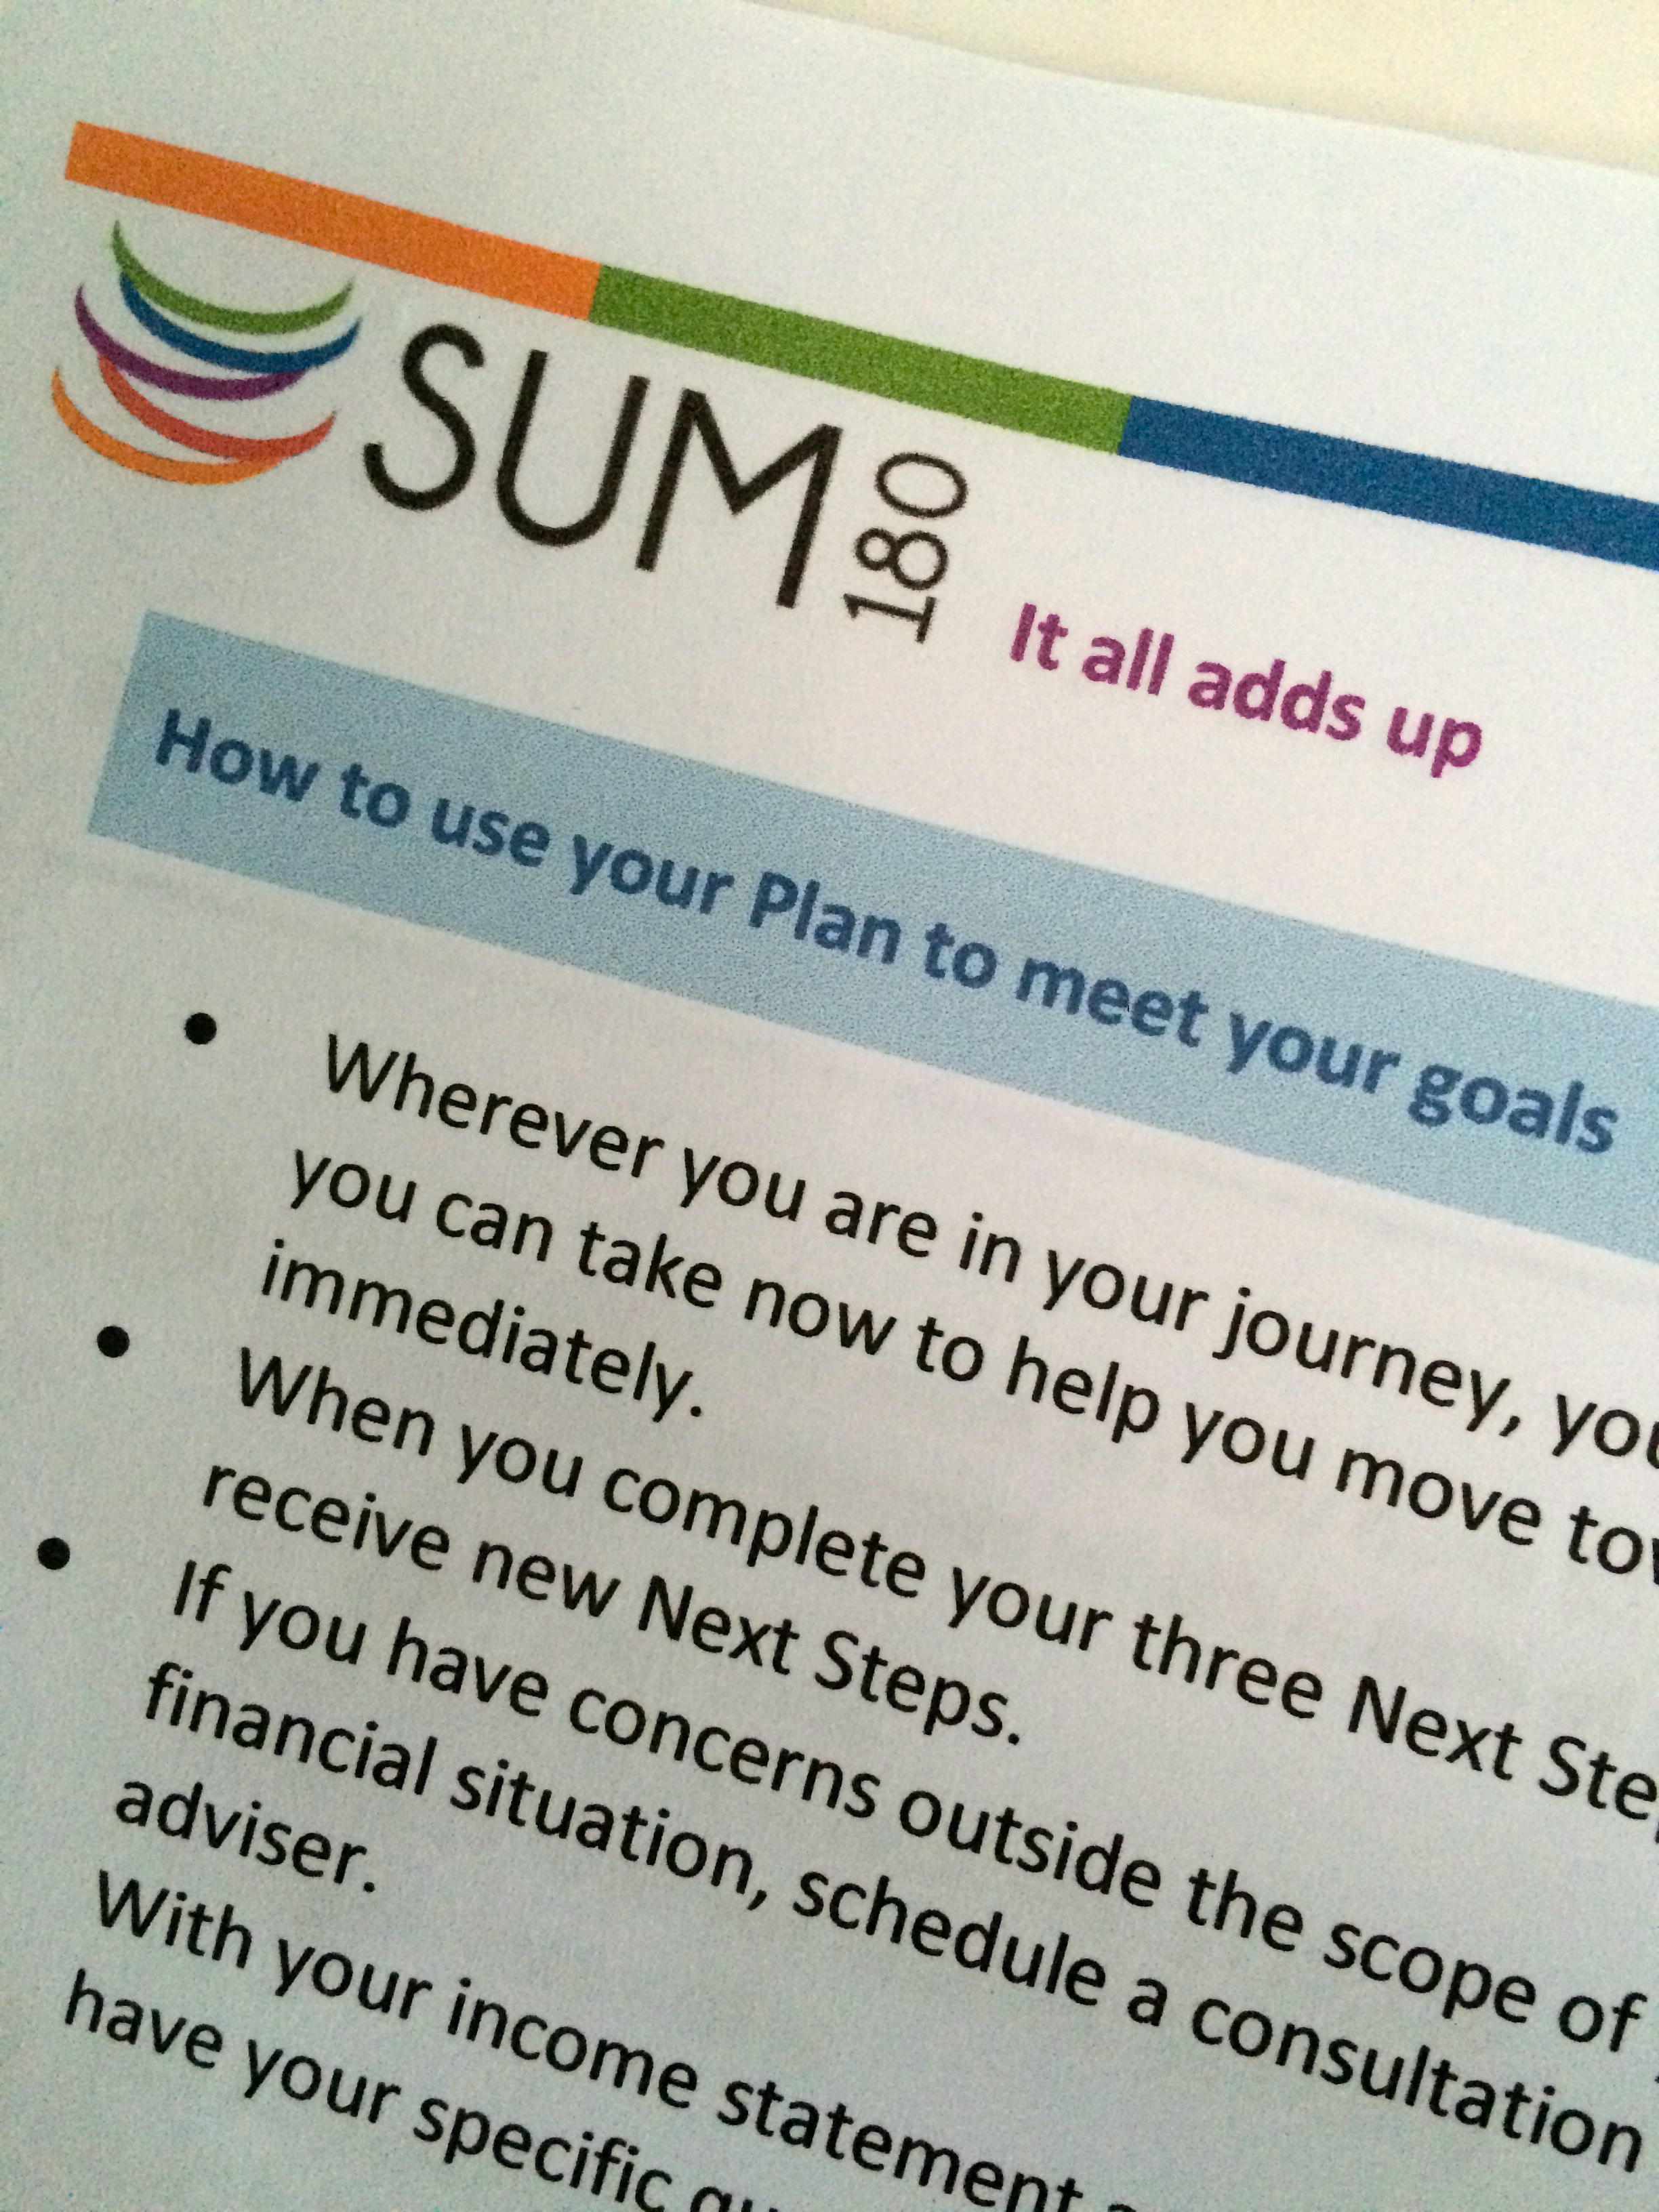 Financial Planning for a Better Future with SUM180